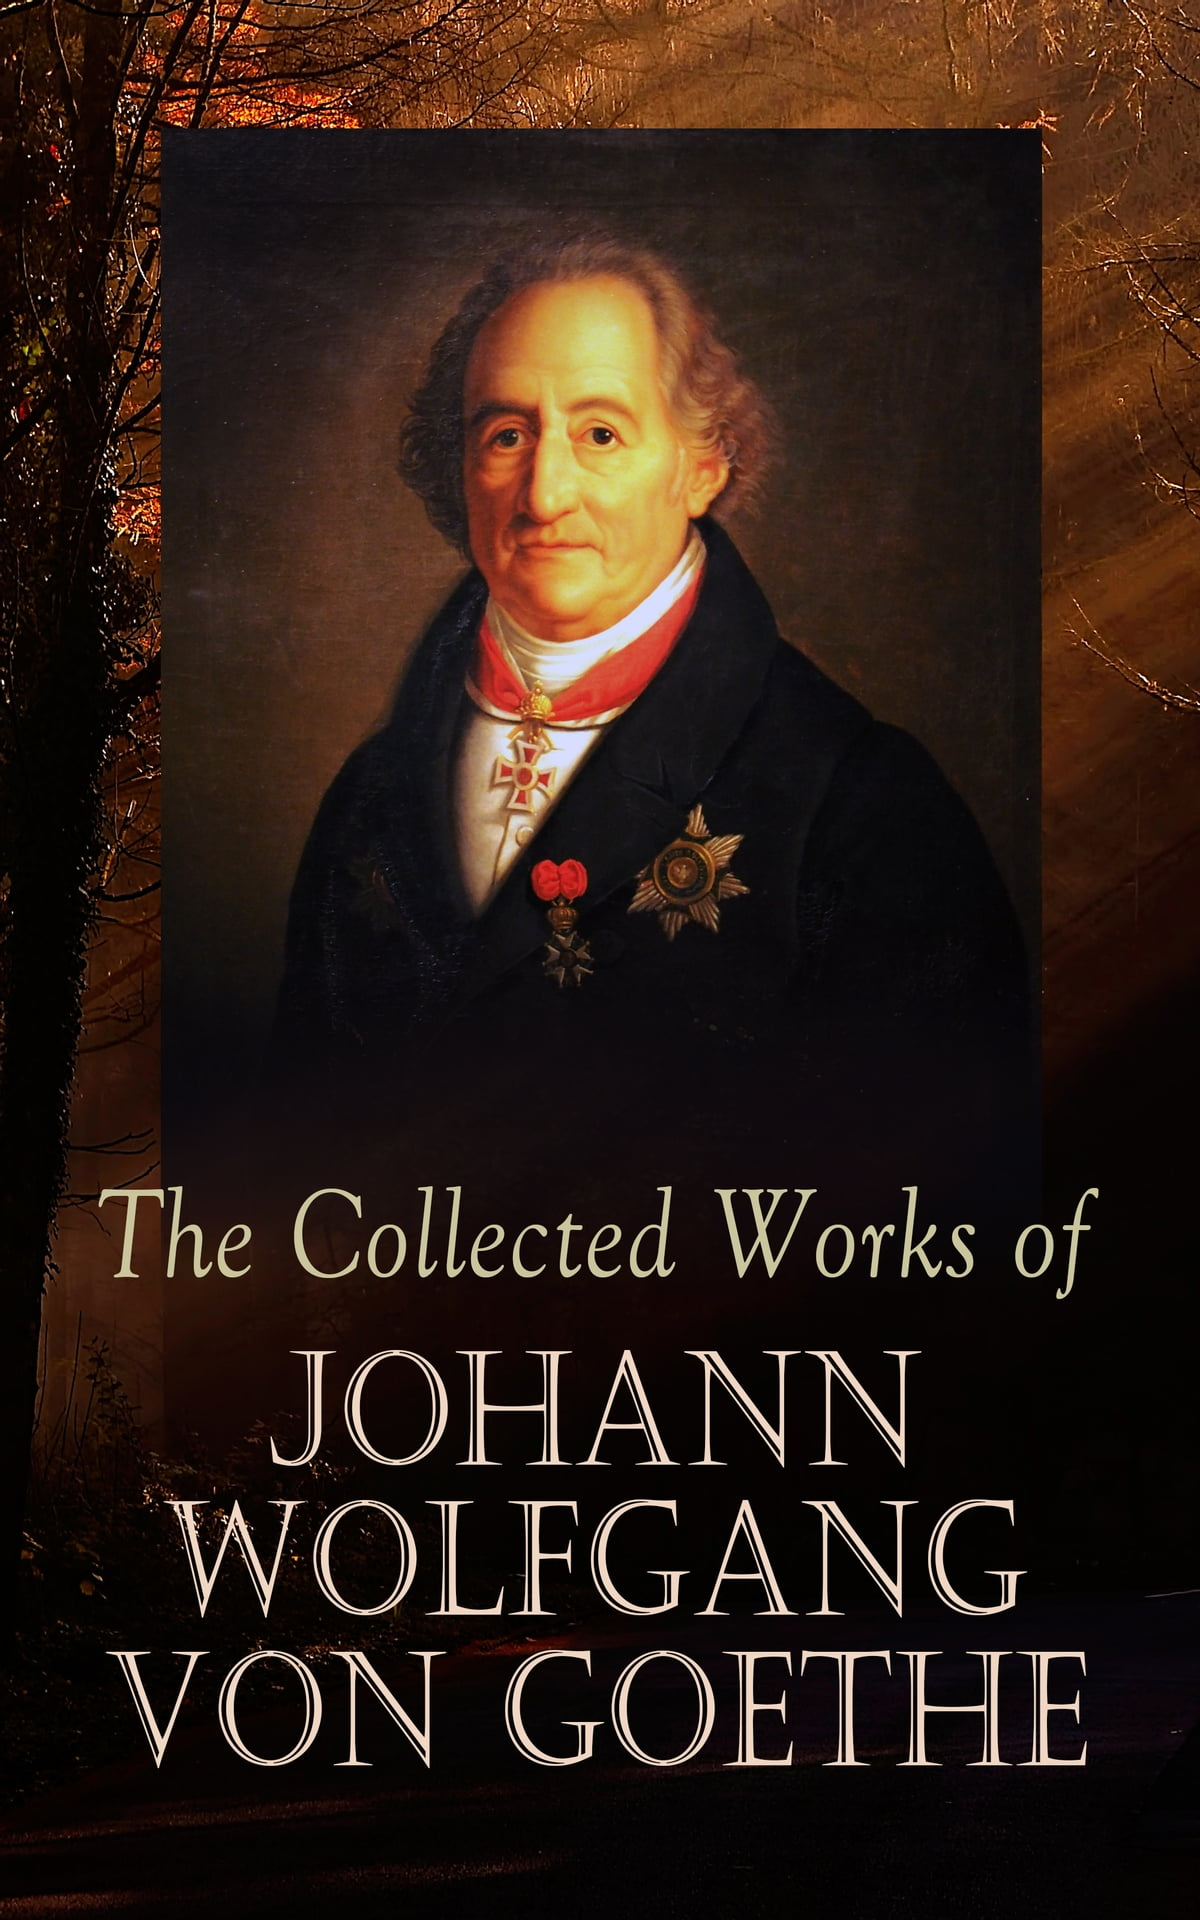 The Collected Works Of Johann Wolfgang Von Goethe Ebooks By Johann Wolfgang Von Goethe Rakuten Kobo